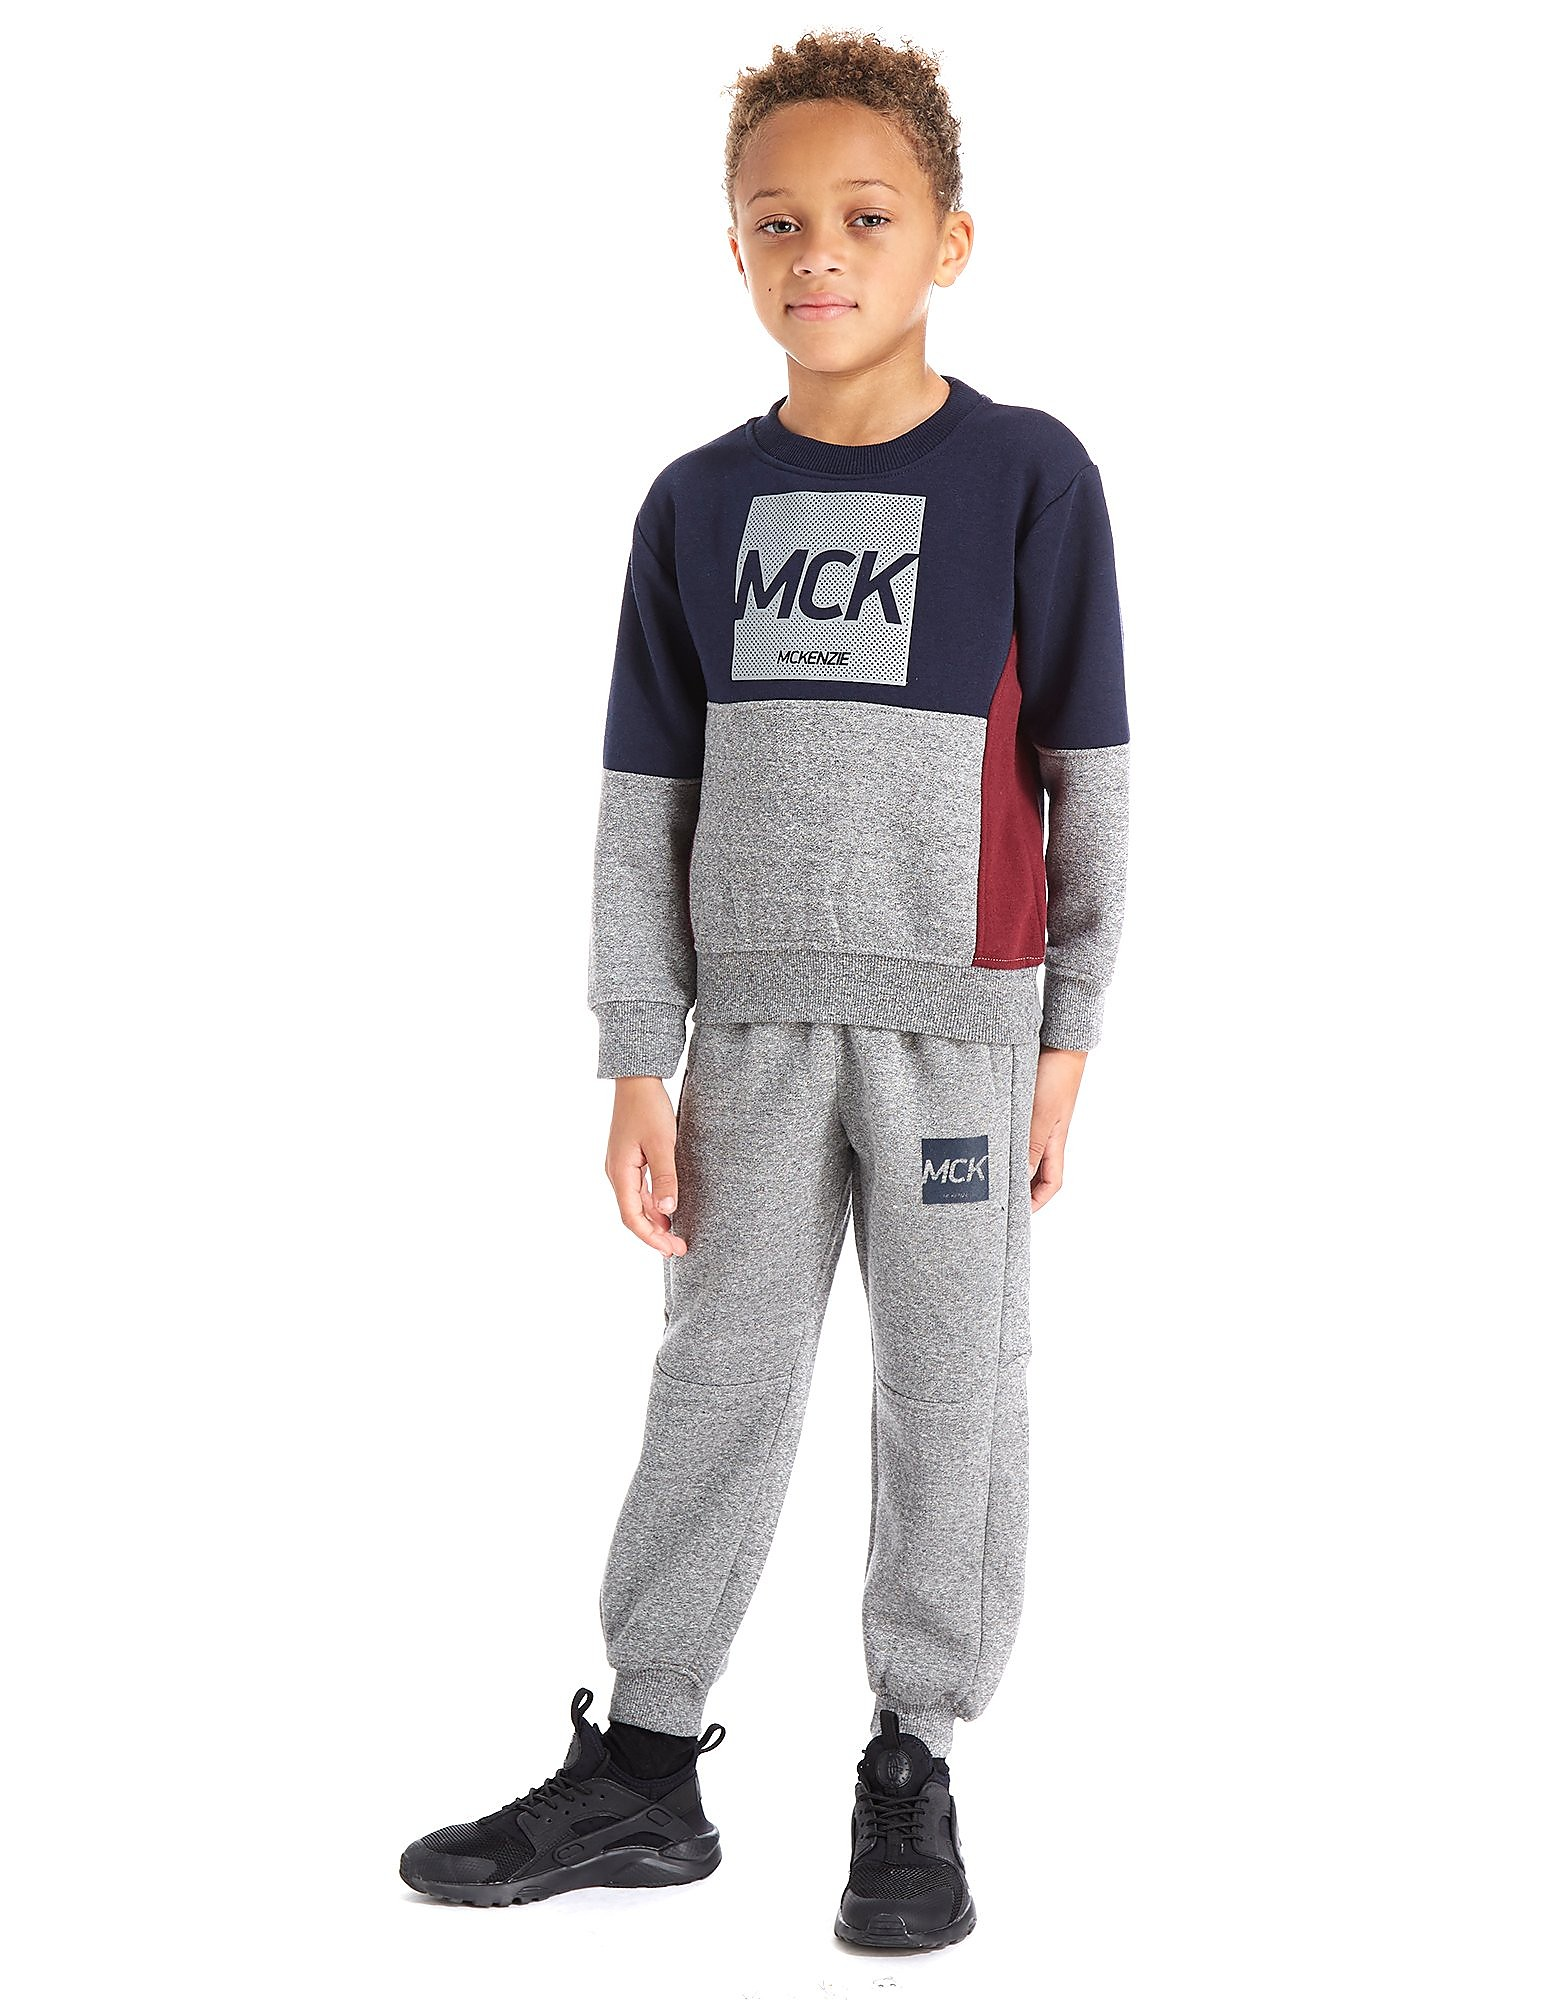 McKenzie Orson Colour Block Suit Children